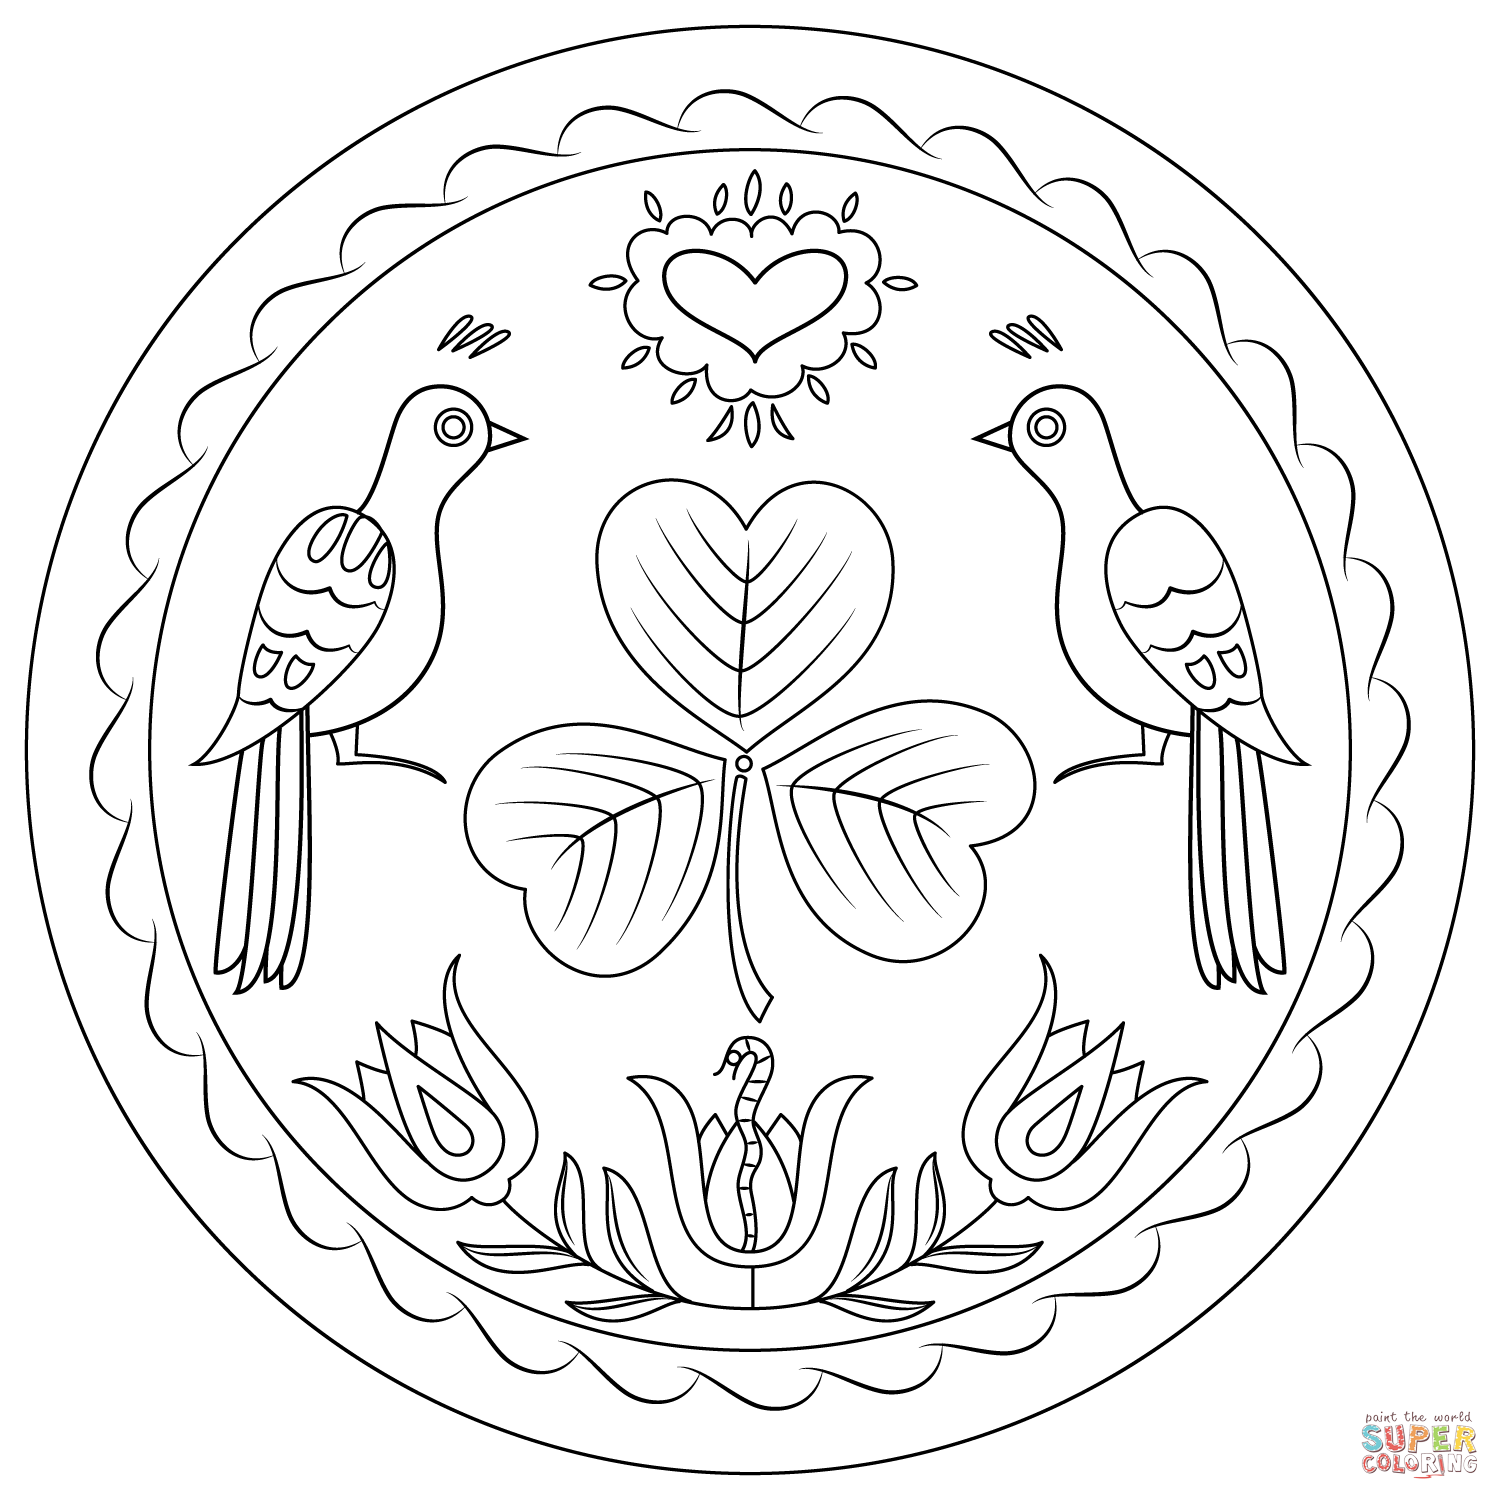 Pennsylvania Hex Sign Coloring Page